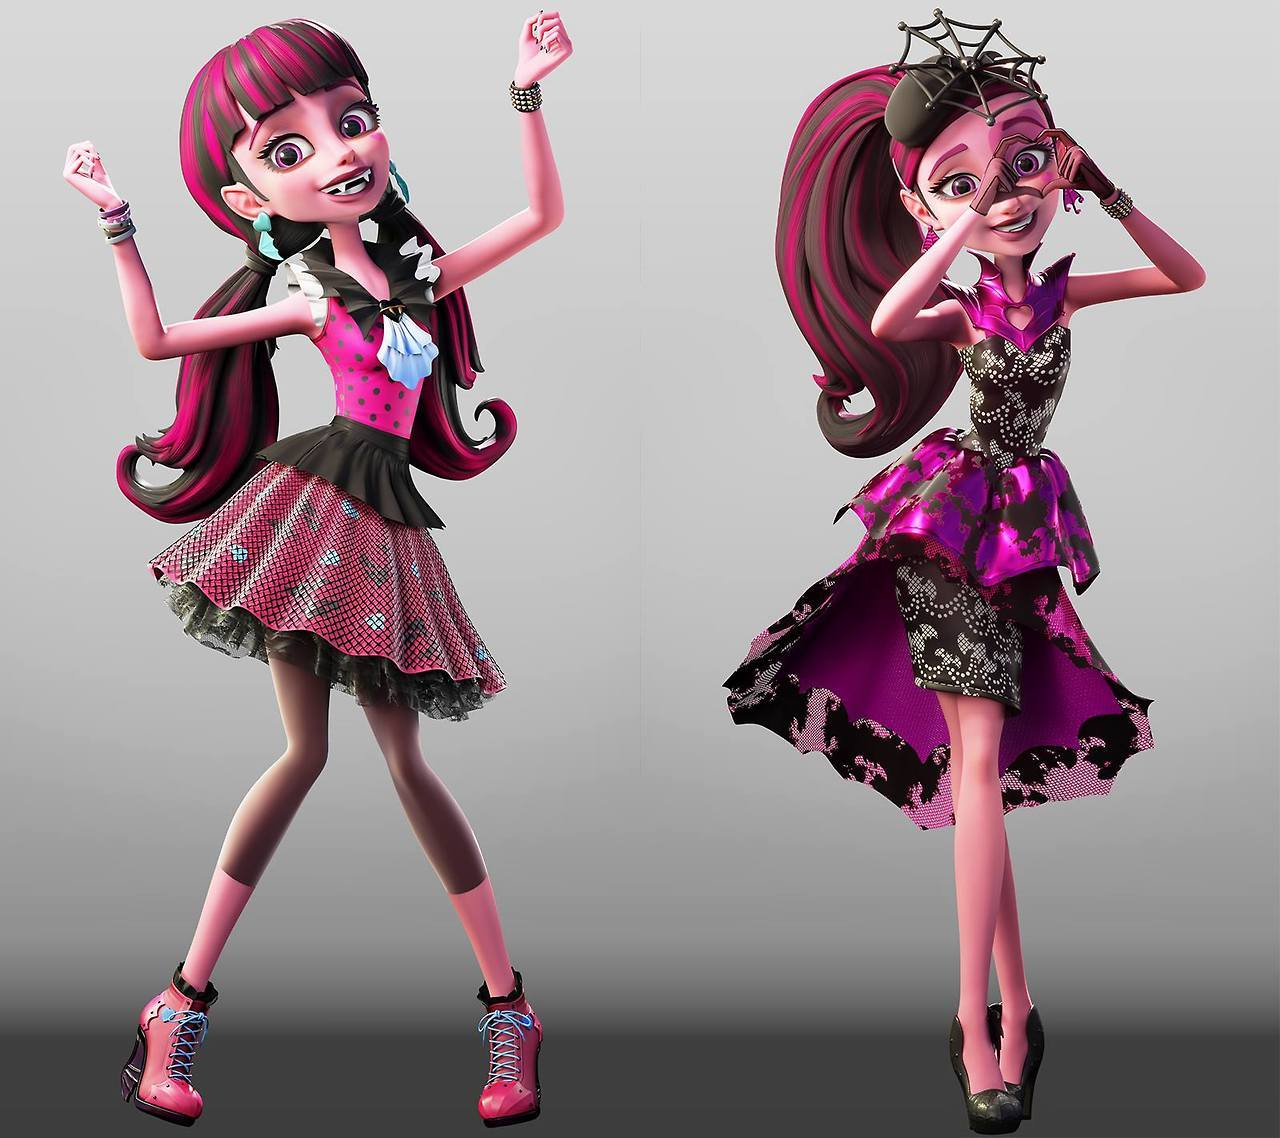 Monster High Images Draculaura Hd Wallpaper And Background Photos